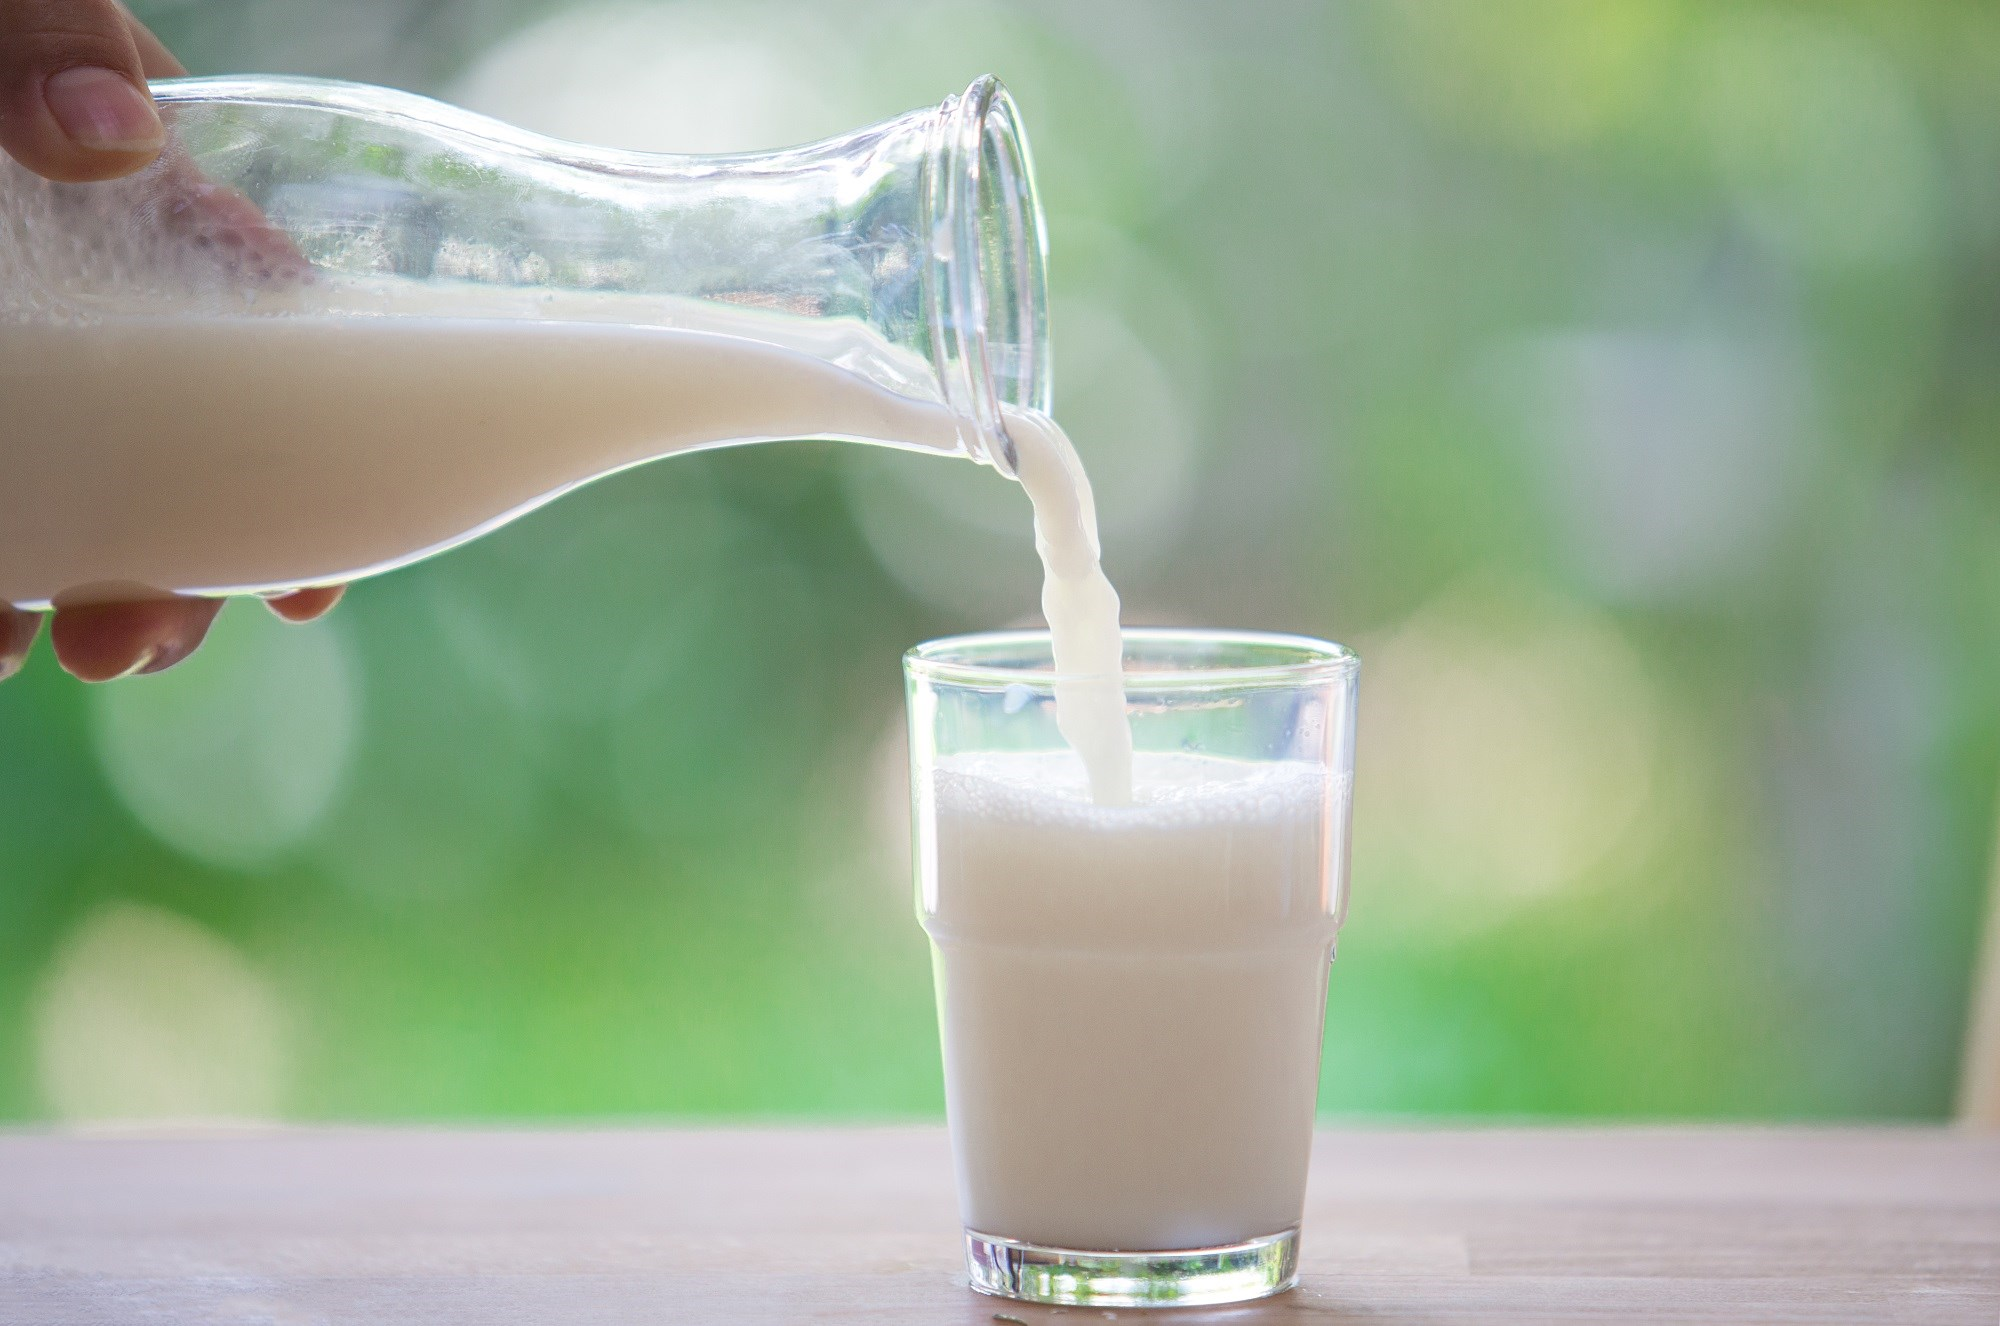 No Evidence for Milk Increasing Mucus Production From Lungs